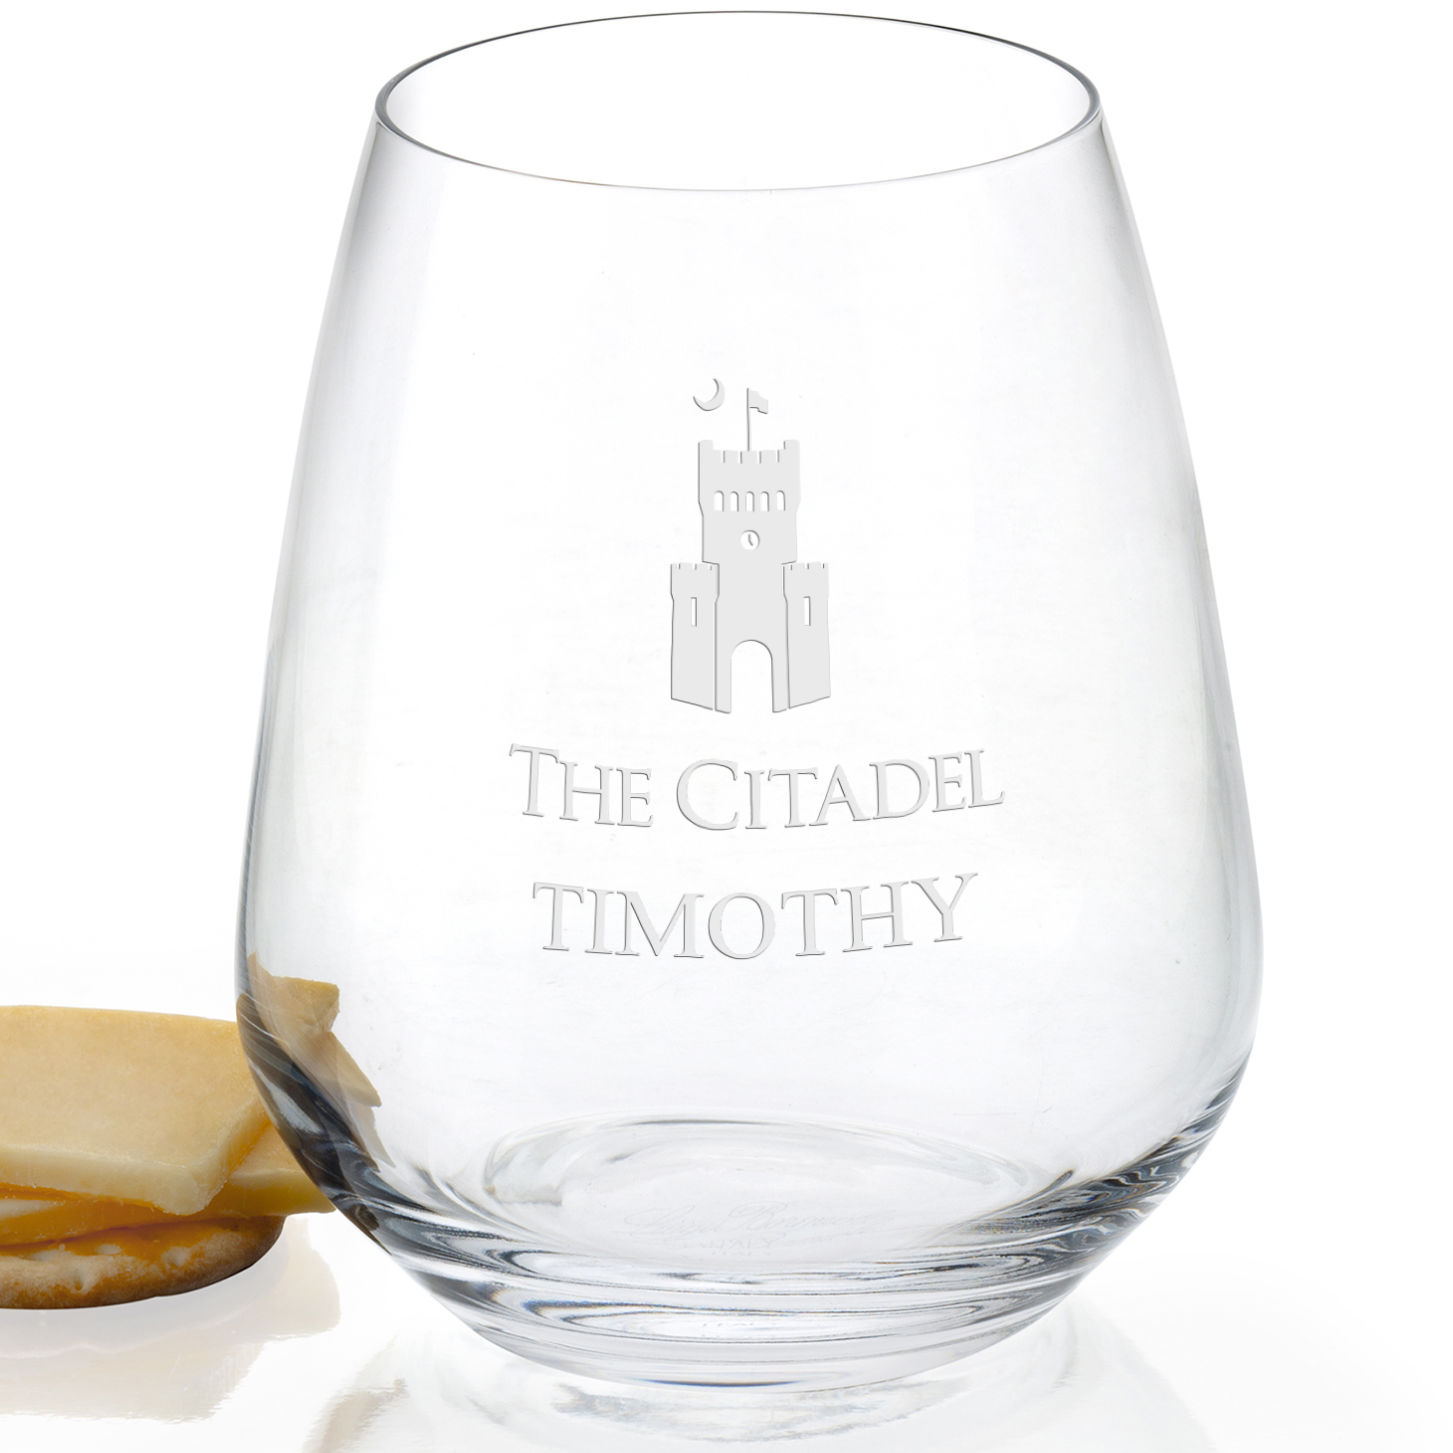 Citadel Stemless Wine Glasses - Set of 4 - Image 2